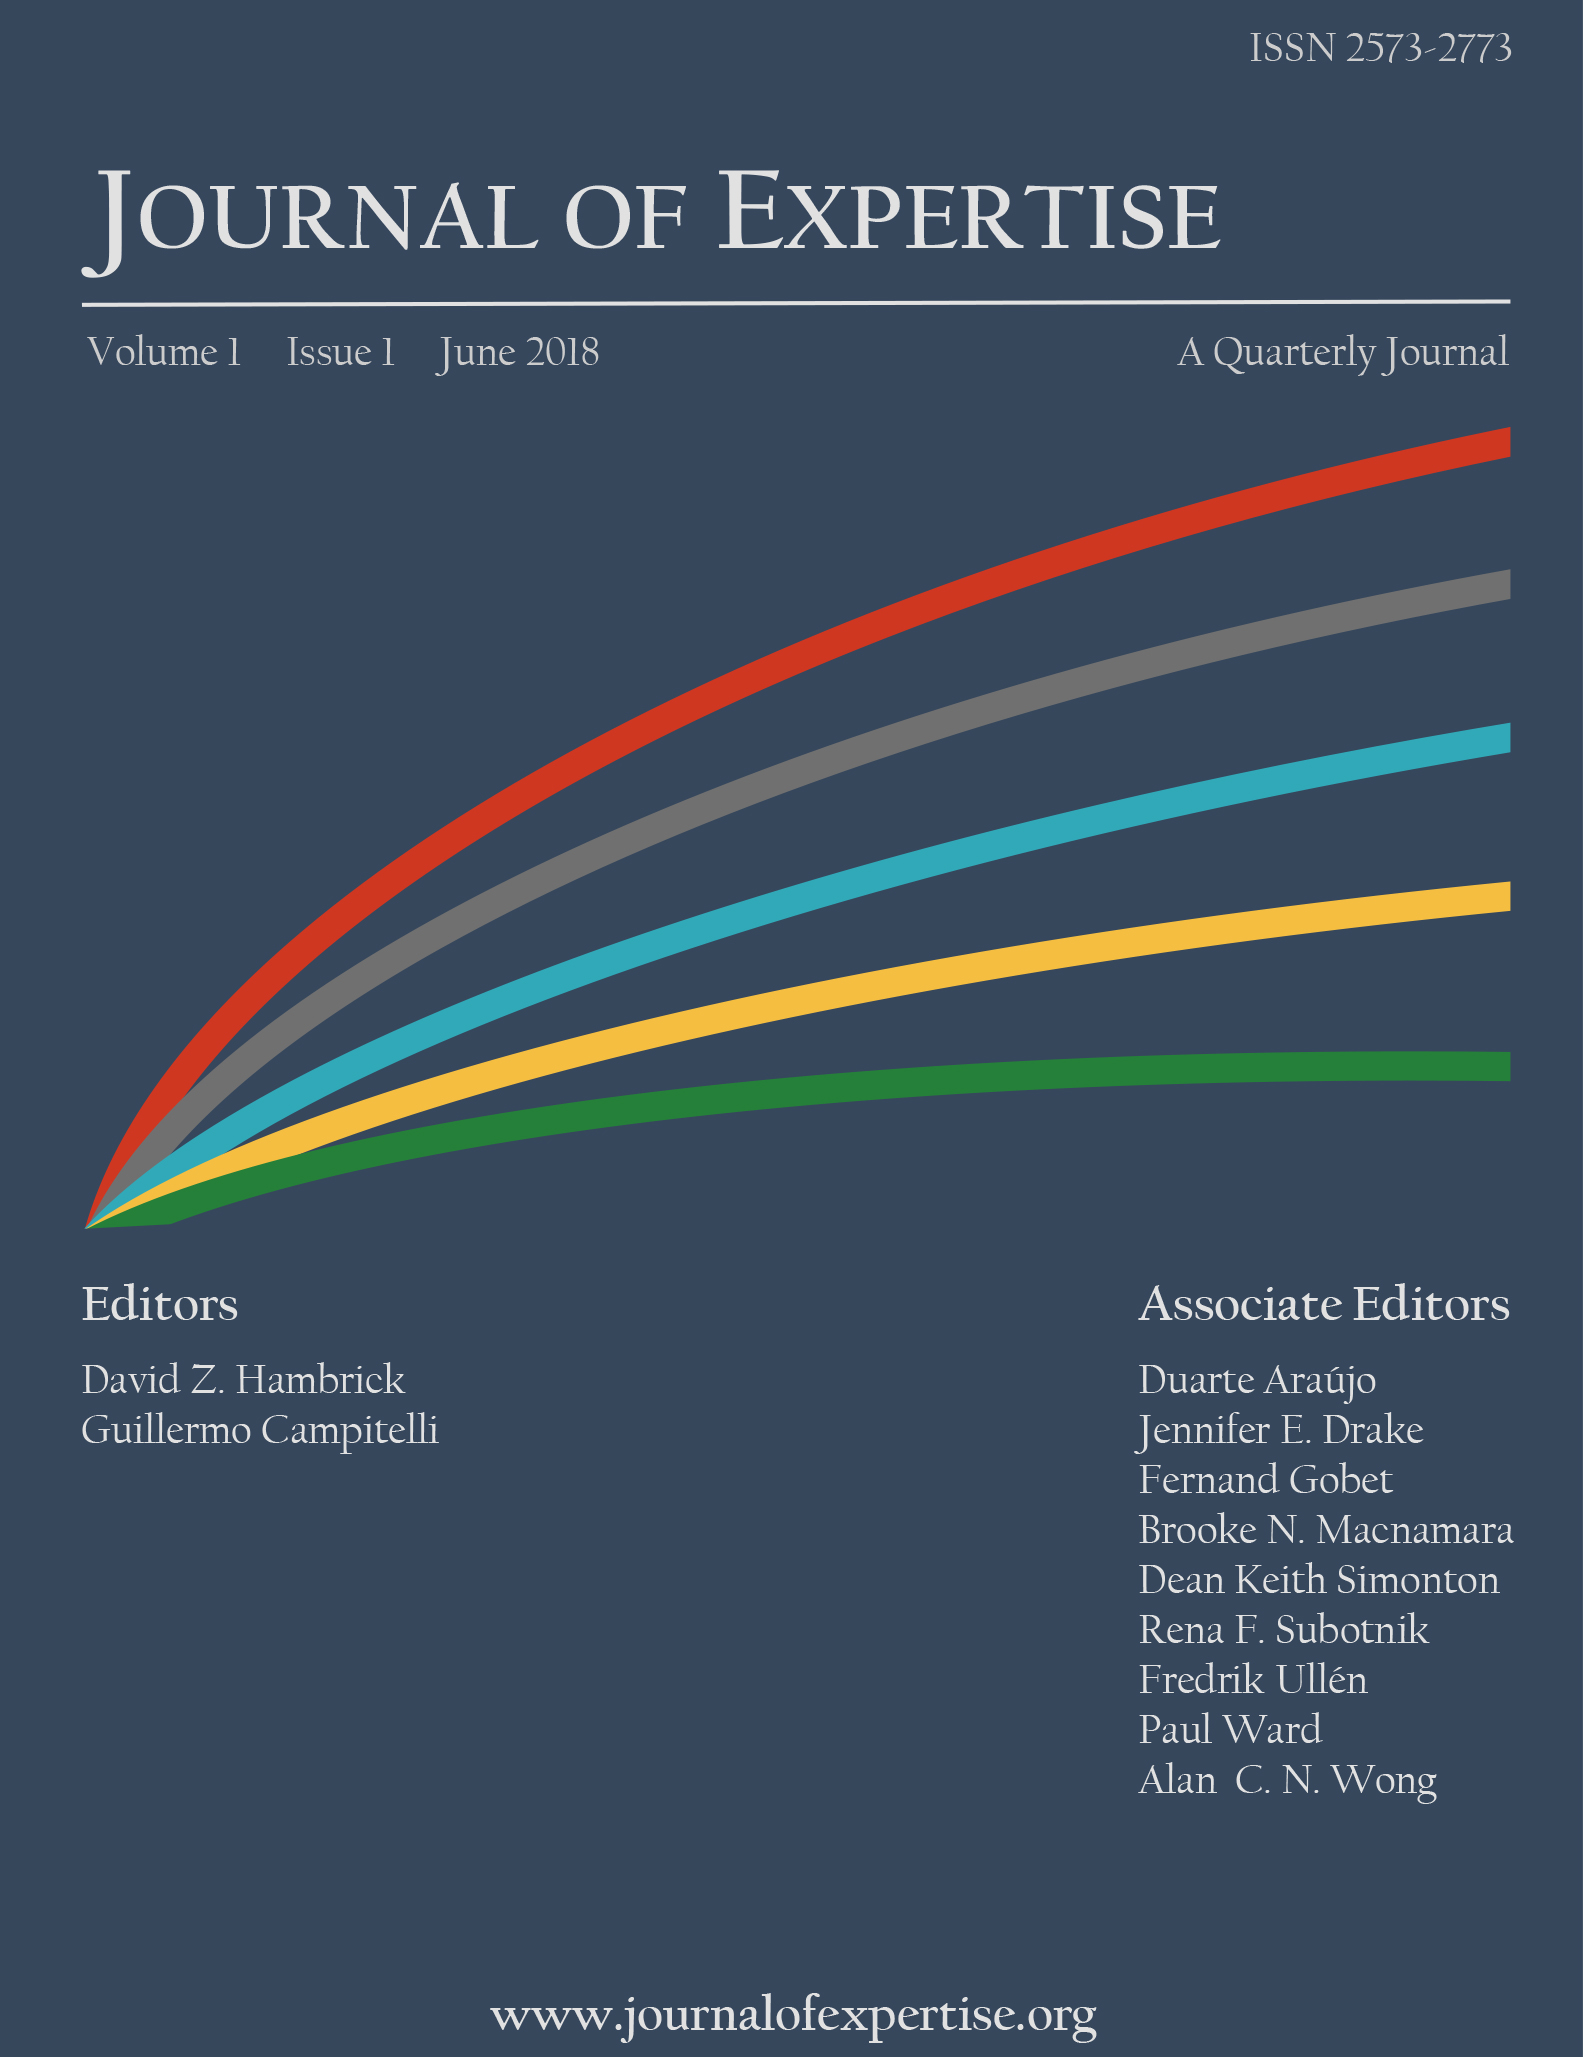 Journal of Expertise Volume 1 Issue 1